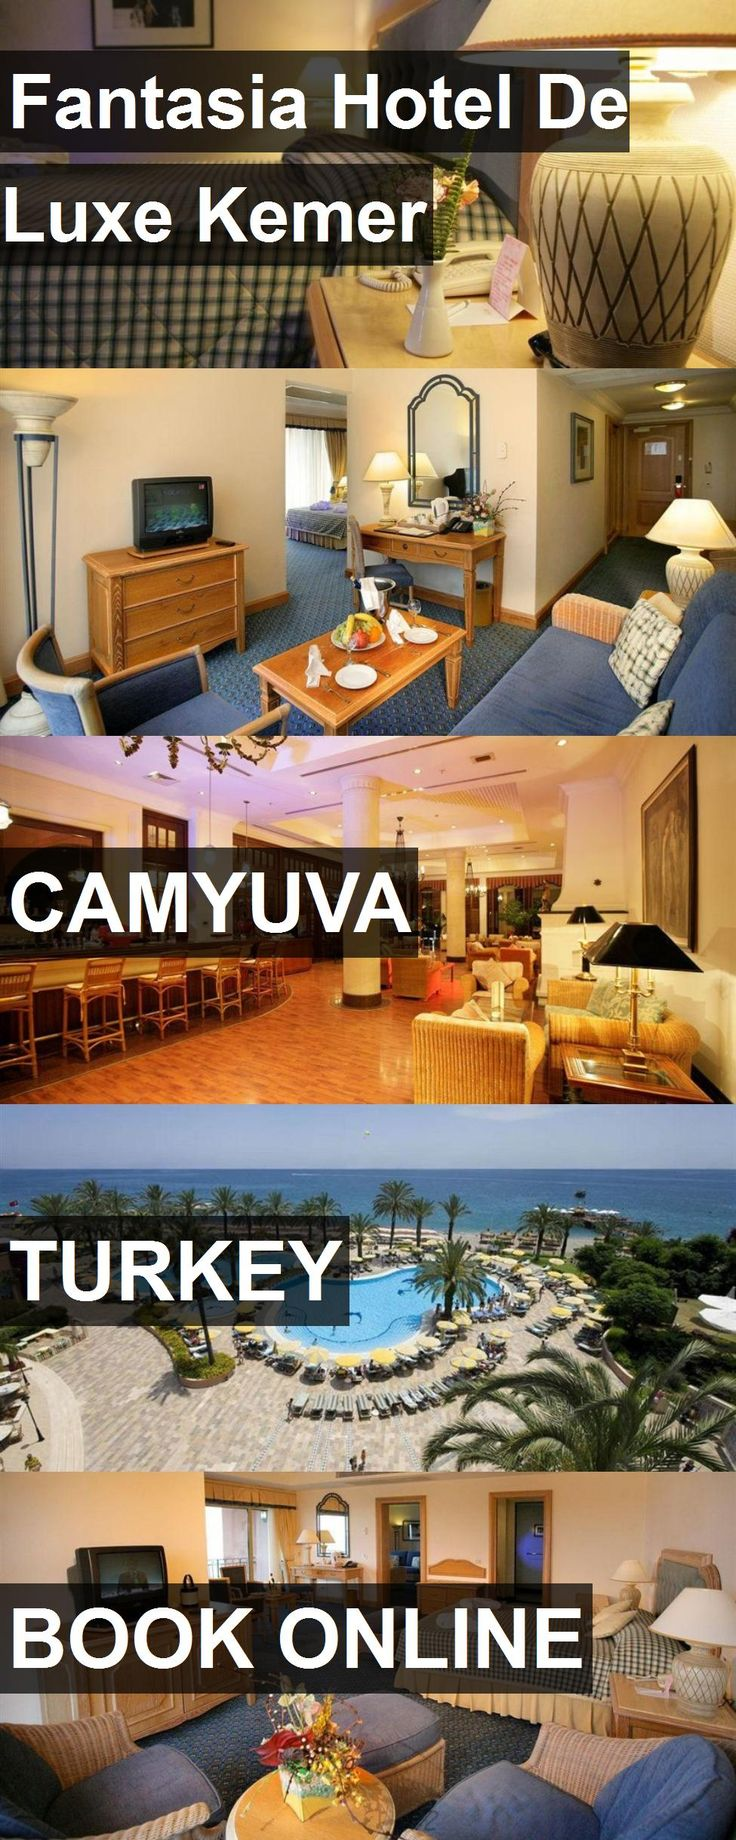 Hotel Fantasia Hotel De Luxe Kemer in Camyuva, Turkey. For more information, photos, reviews and best prices please follow the link. #Turkey #Camyuva #FantasiaHotelDeLuxeKemer #hotel #travel #vacation